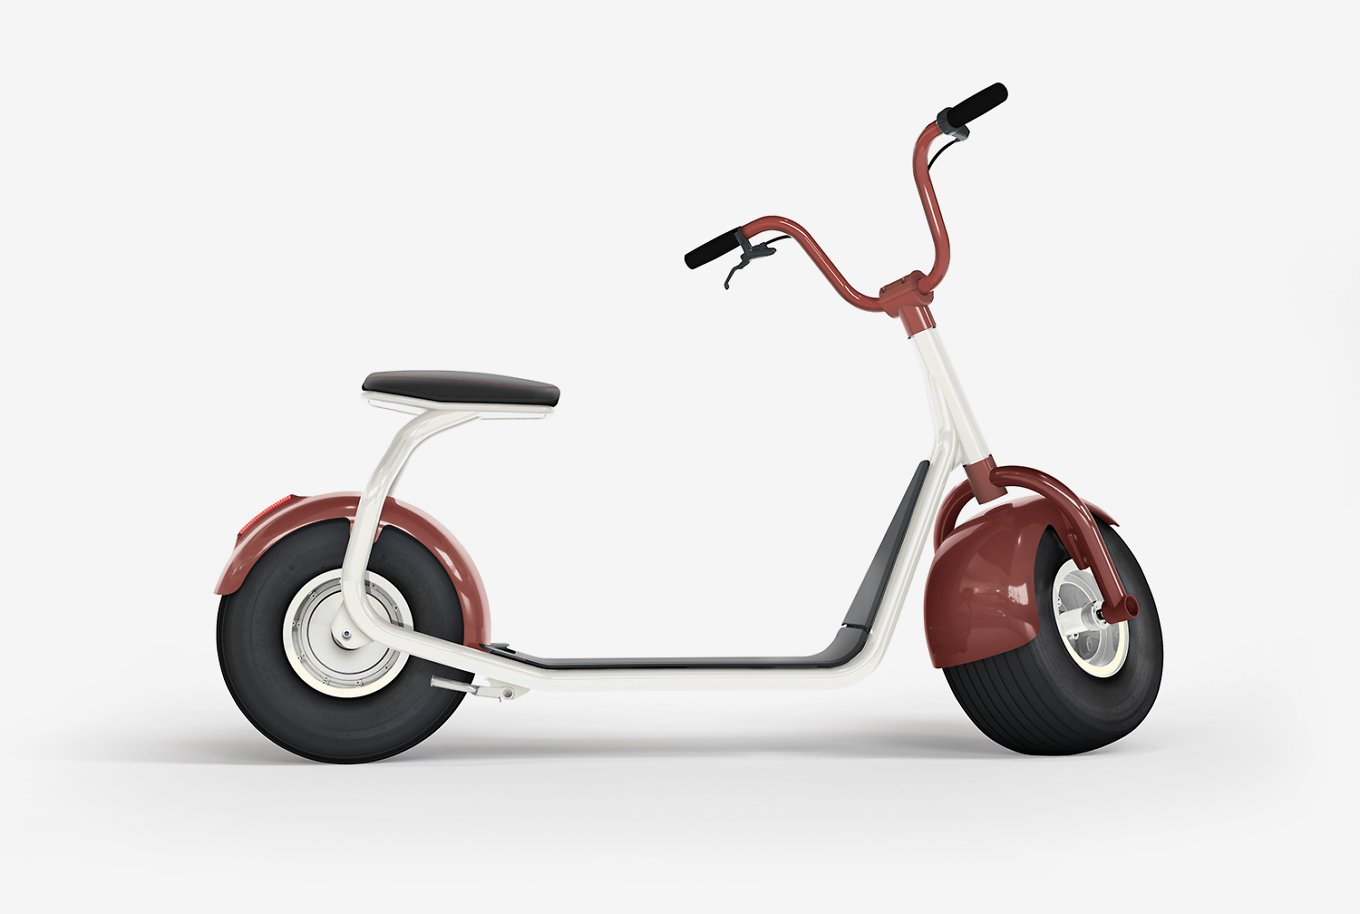 SCROOSER – The World's First Electric Scooter